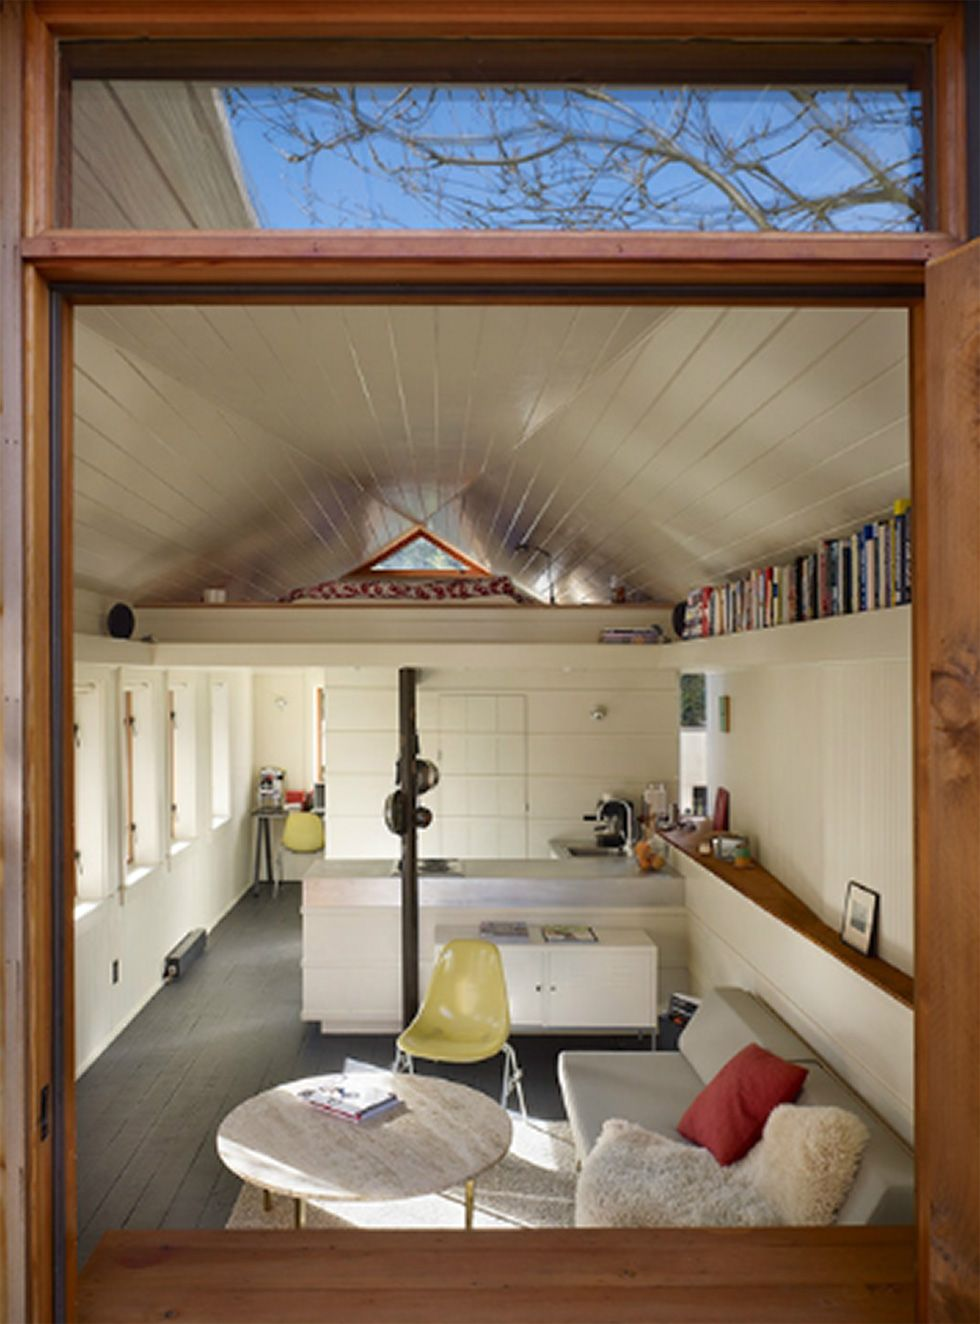 Converting A Garage Into A Room How To Convert A Garage